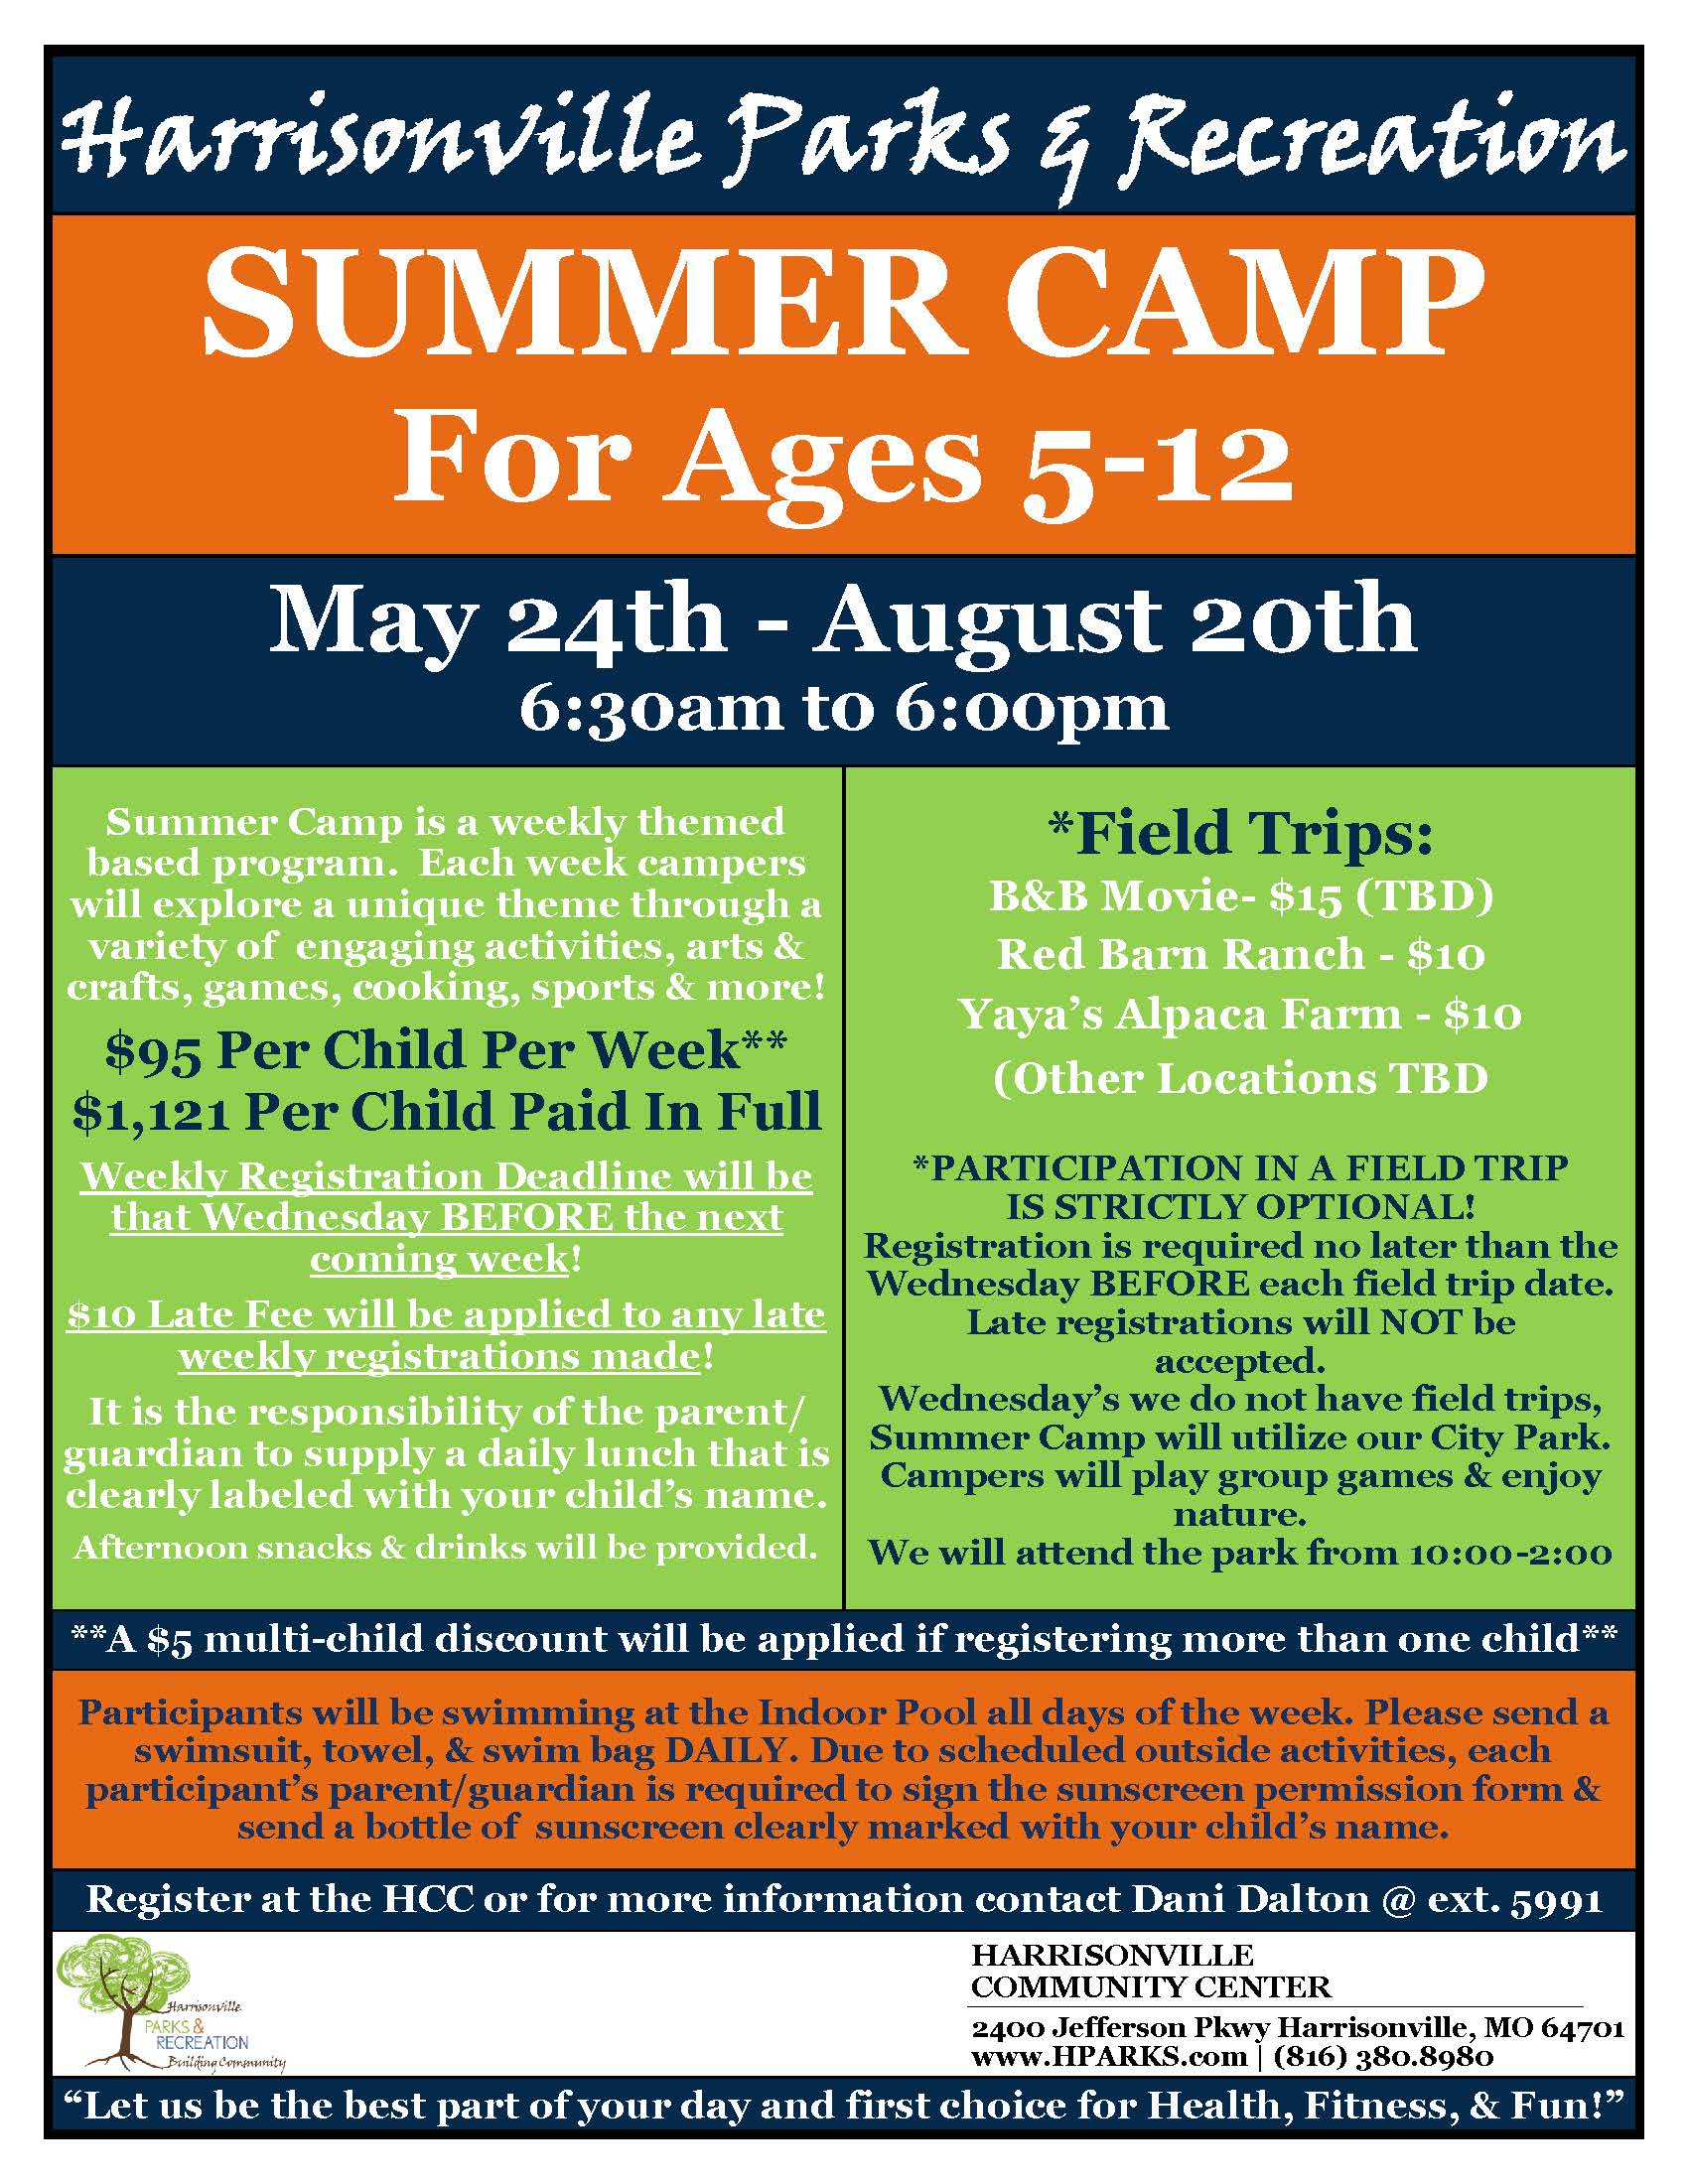 FINAL Summer Camp Flyer 2021, May 24th-Aug 20th_Page_1